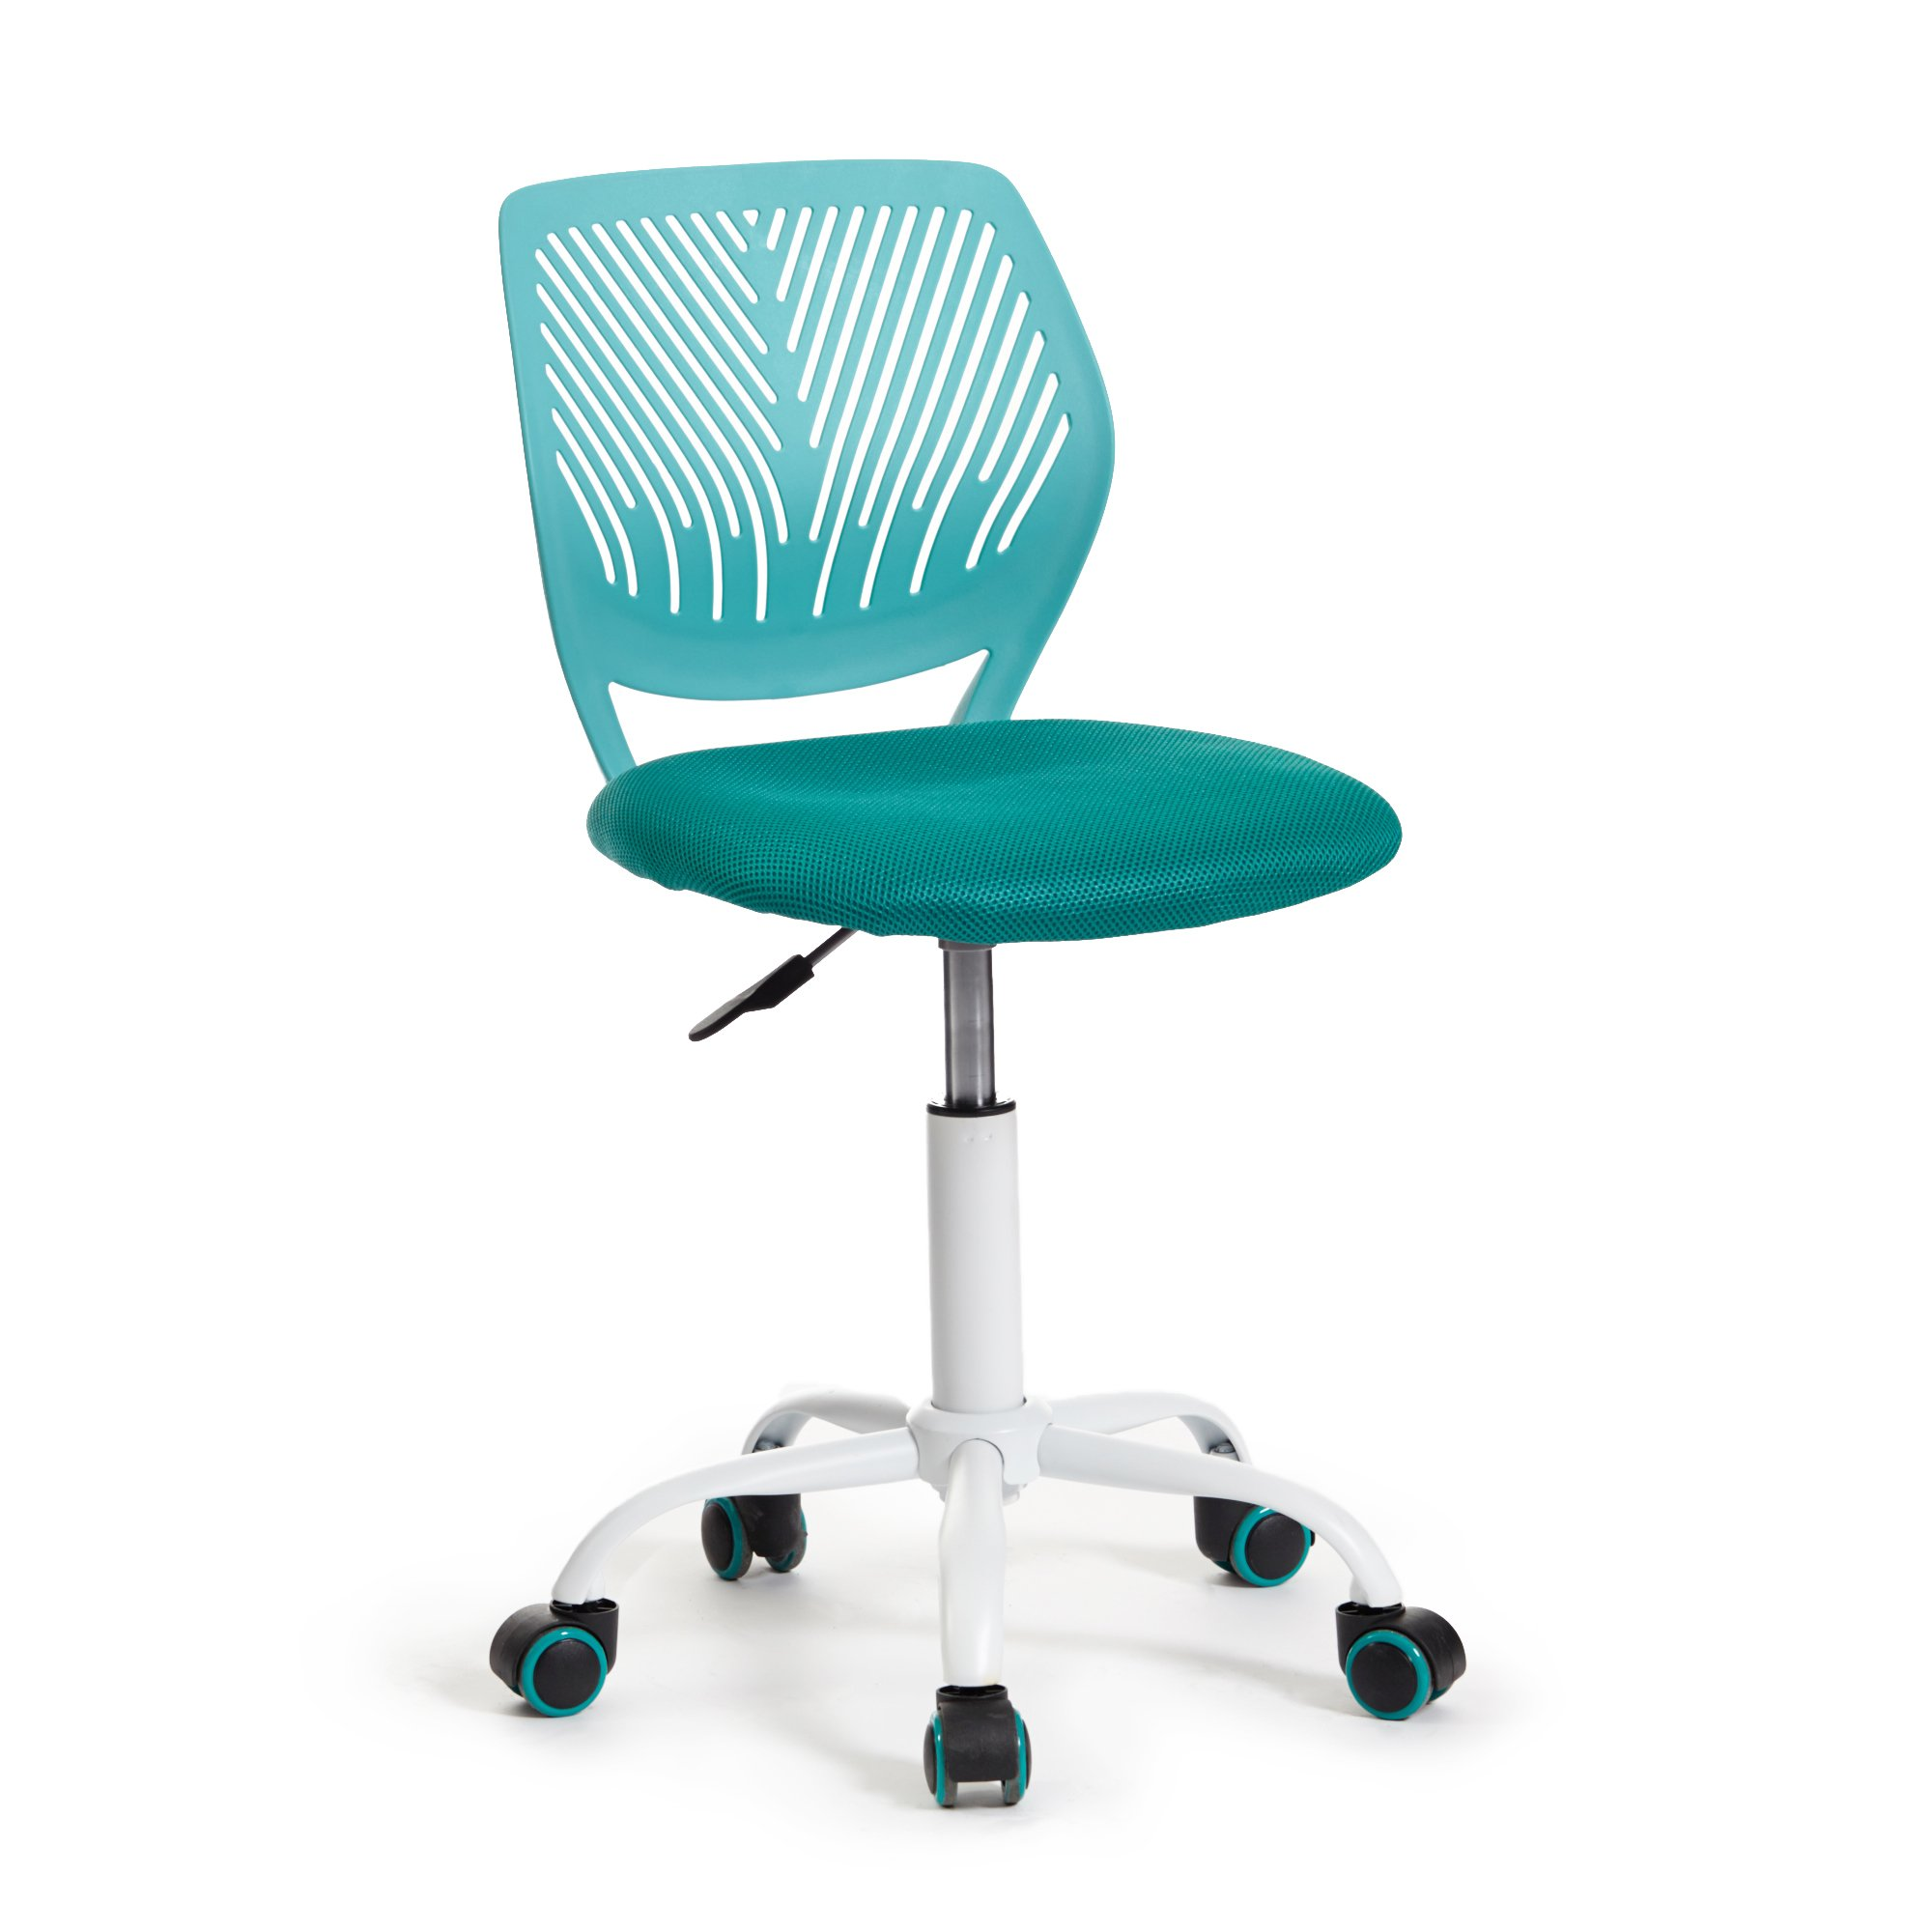 GreenForest Office Task Desk Chair Adjustable Mid Back Home Children Study Chair, Turquoise